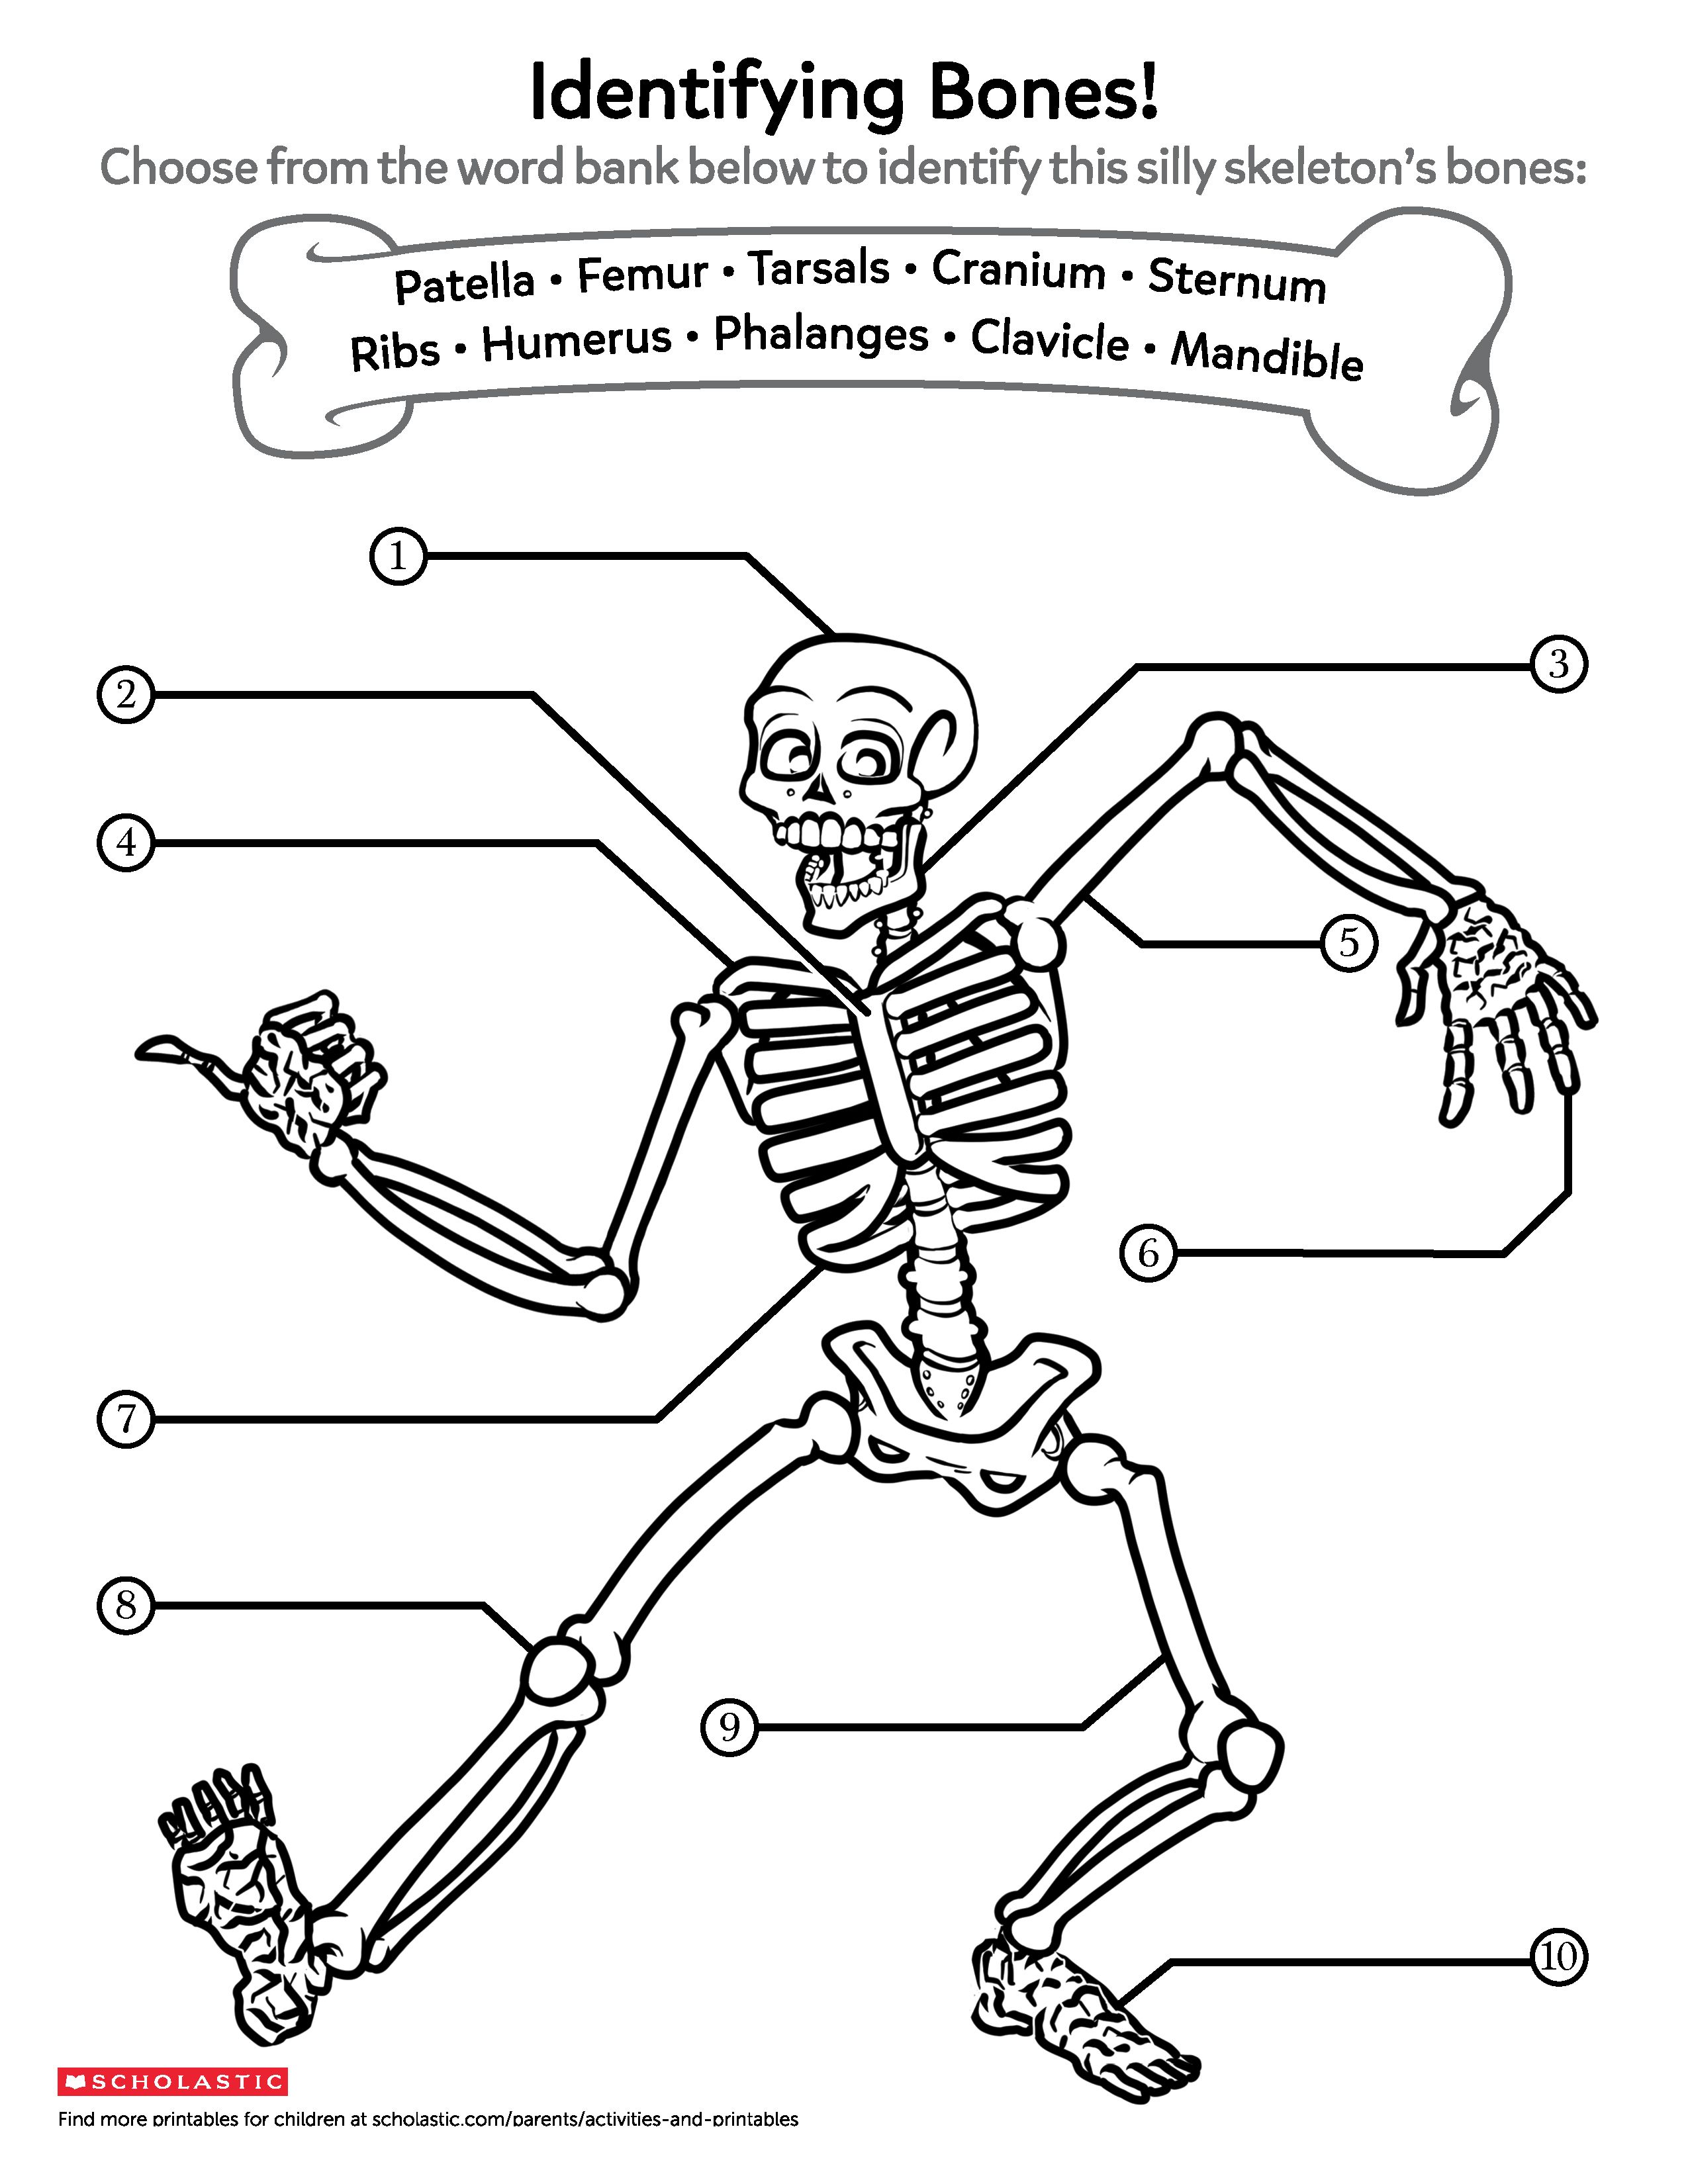 Your Child Can Learn About The Different Bones Found In